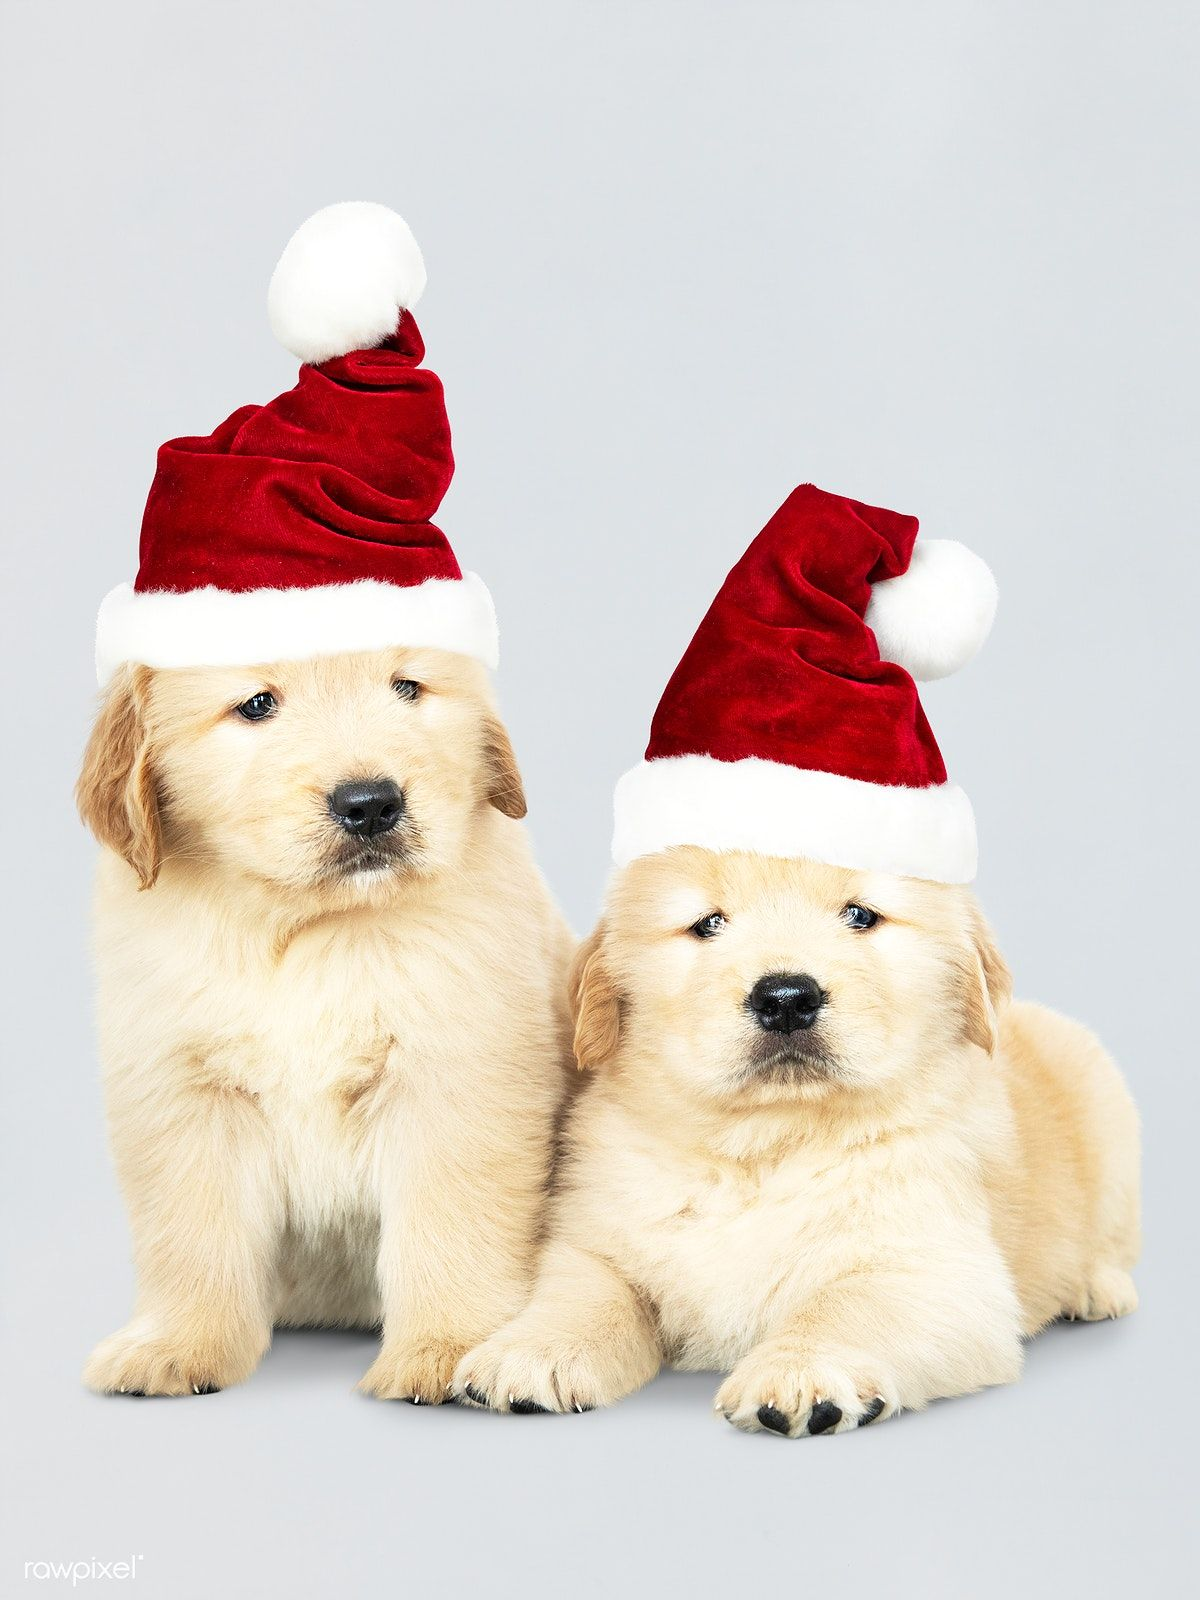 Download Premium Image Of Two Golden Retriever Puppies Wearing A